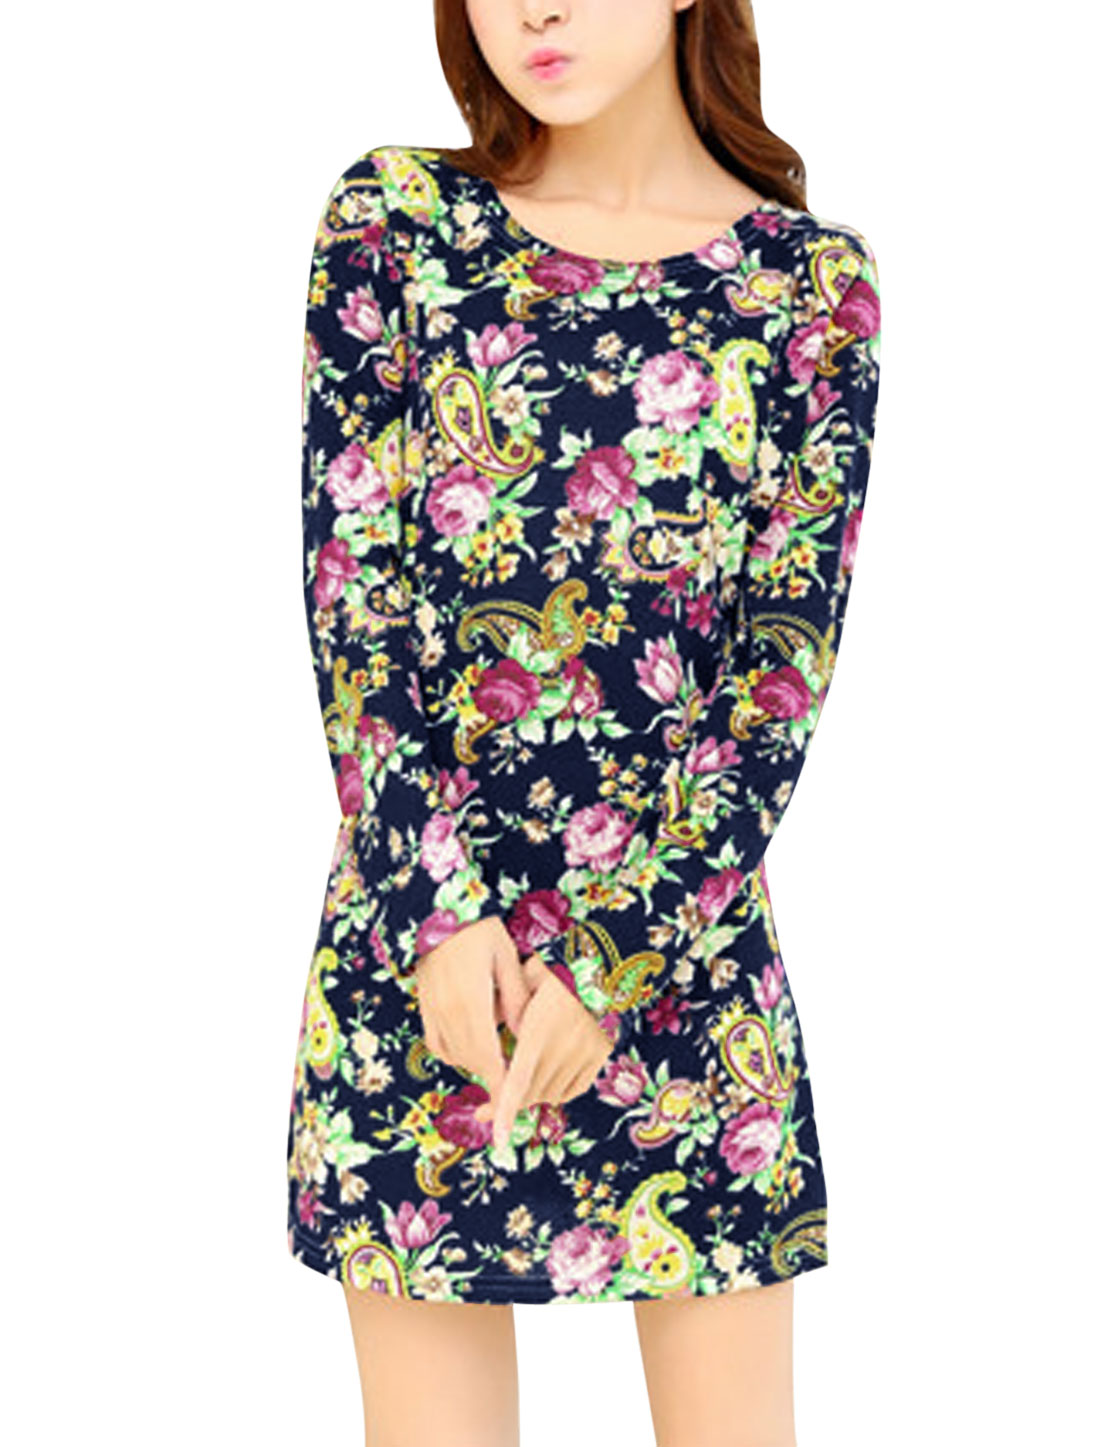 New Style Floral Pattern Fashion Slim Straight Dress for Lady Black S